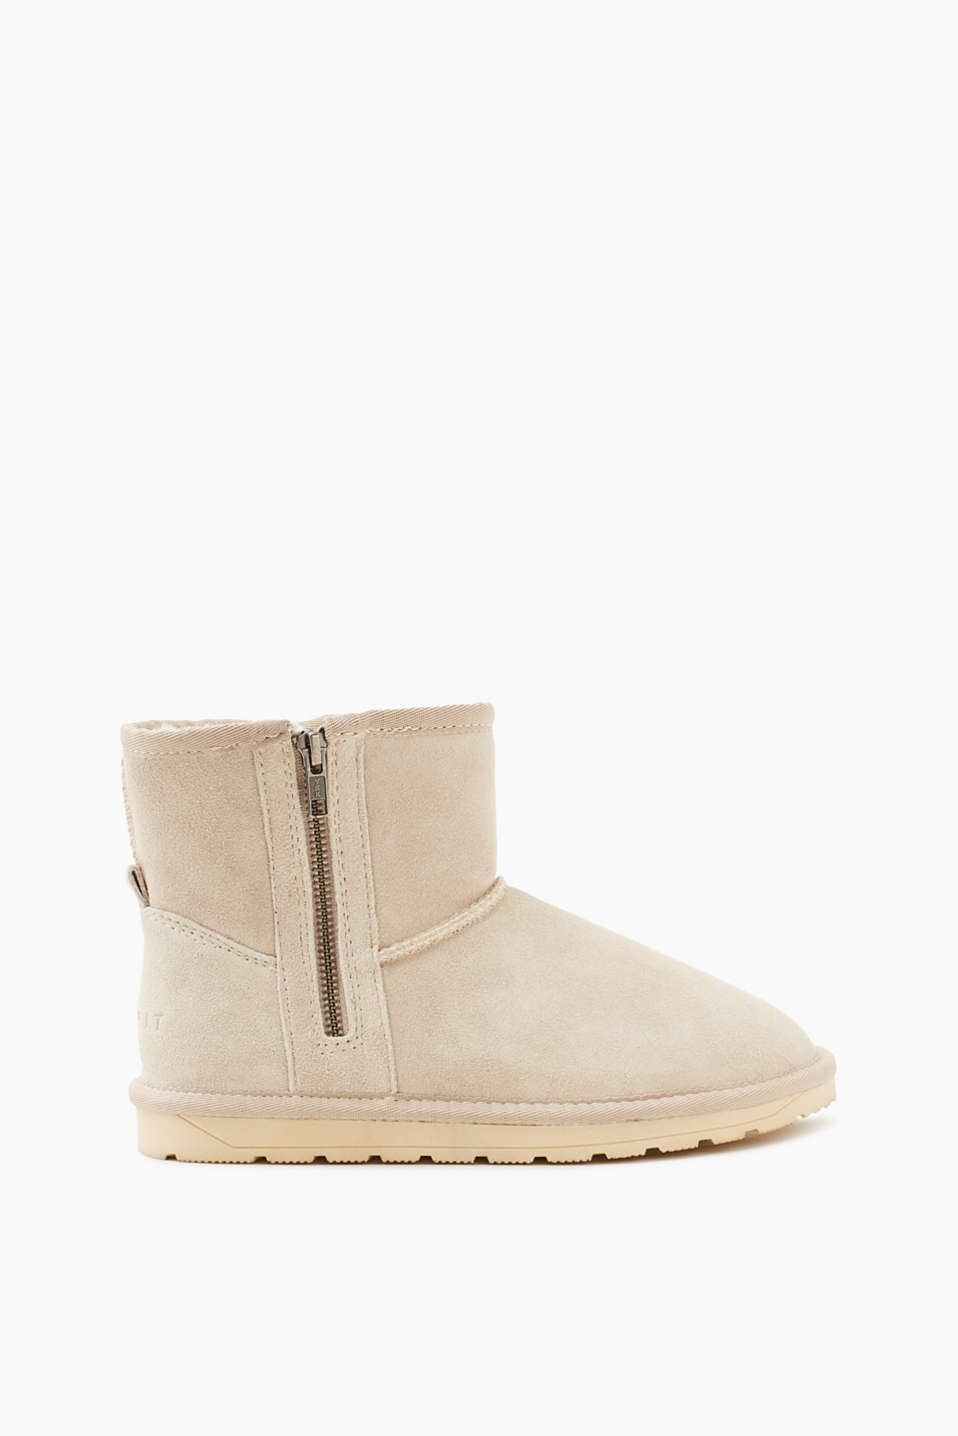 These winter boots in soft suede with cosy faux fur lining are a classic piece.